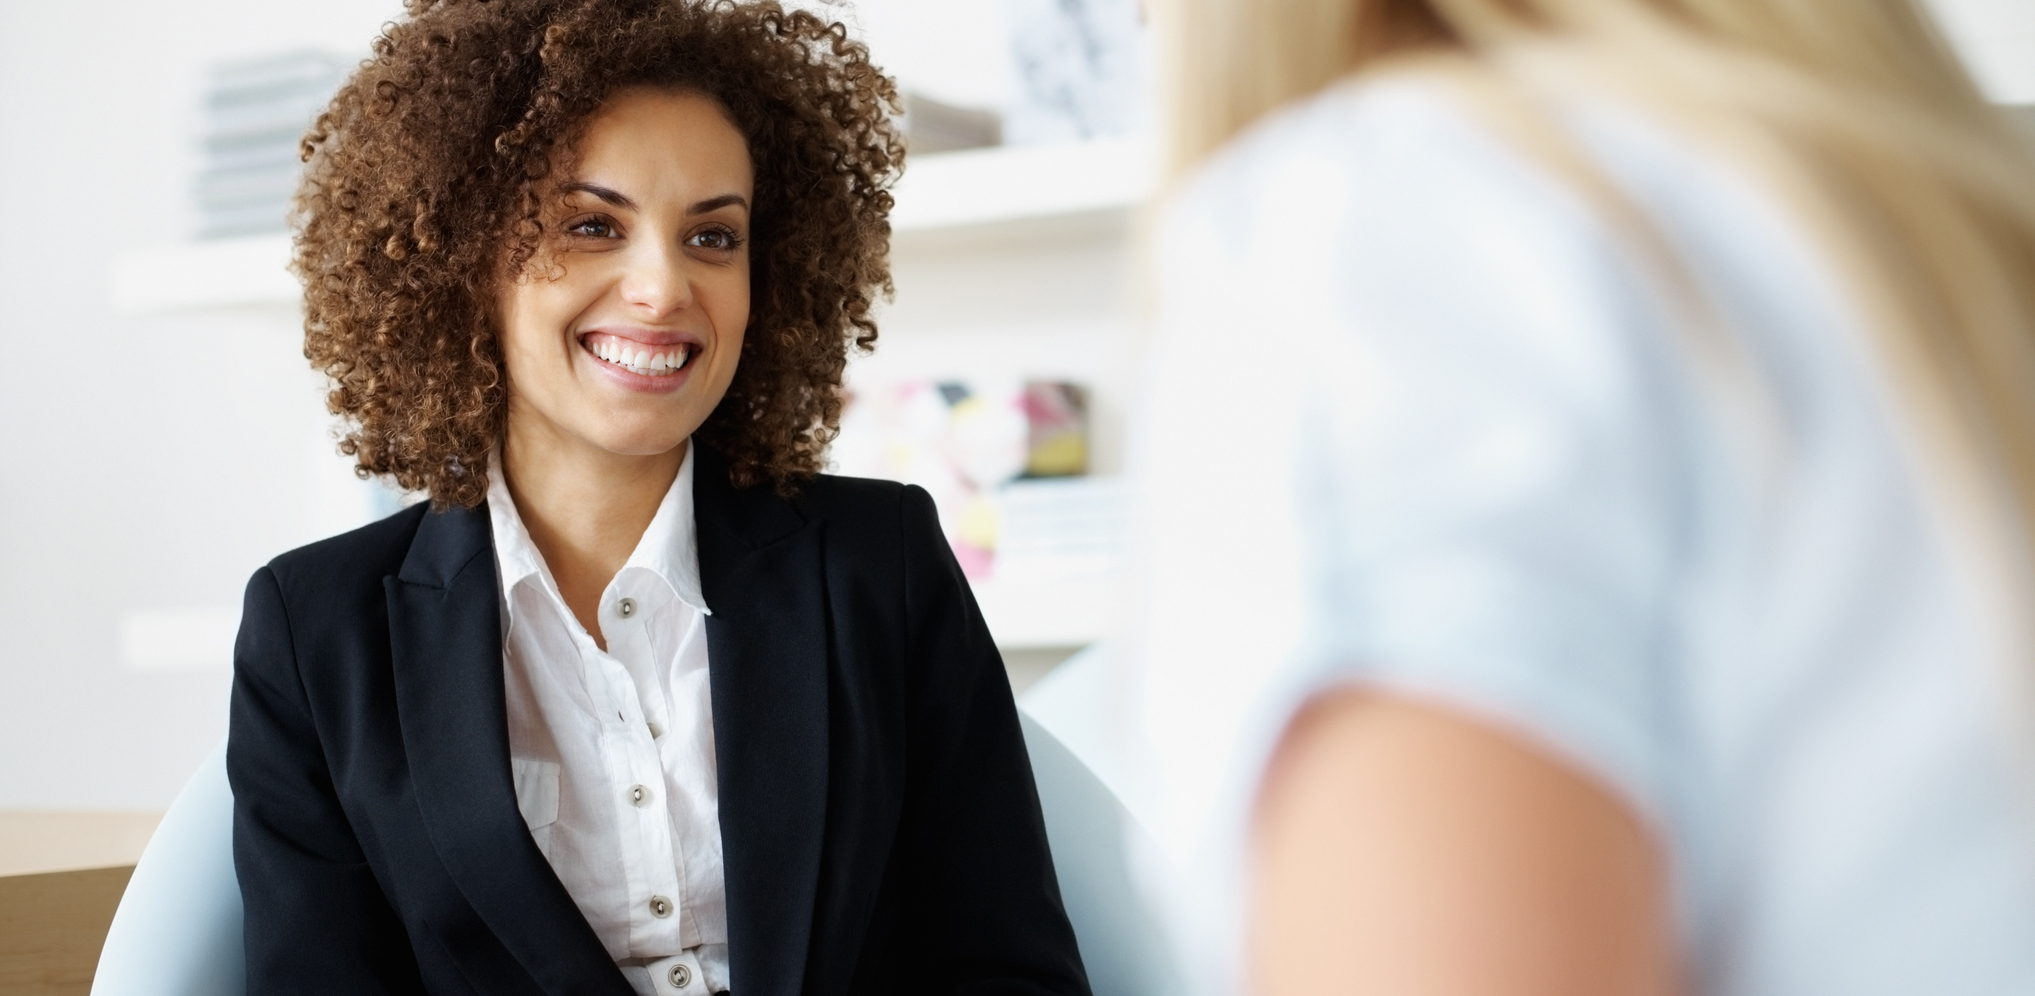 tricks to being the best candidate for a job you re 5 tricks to being an exciting candidate for a job you re a little underqualified